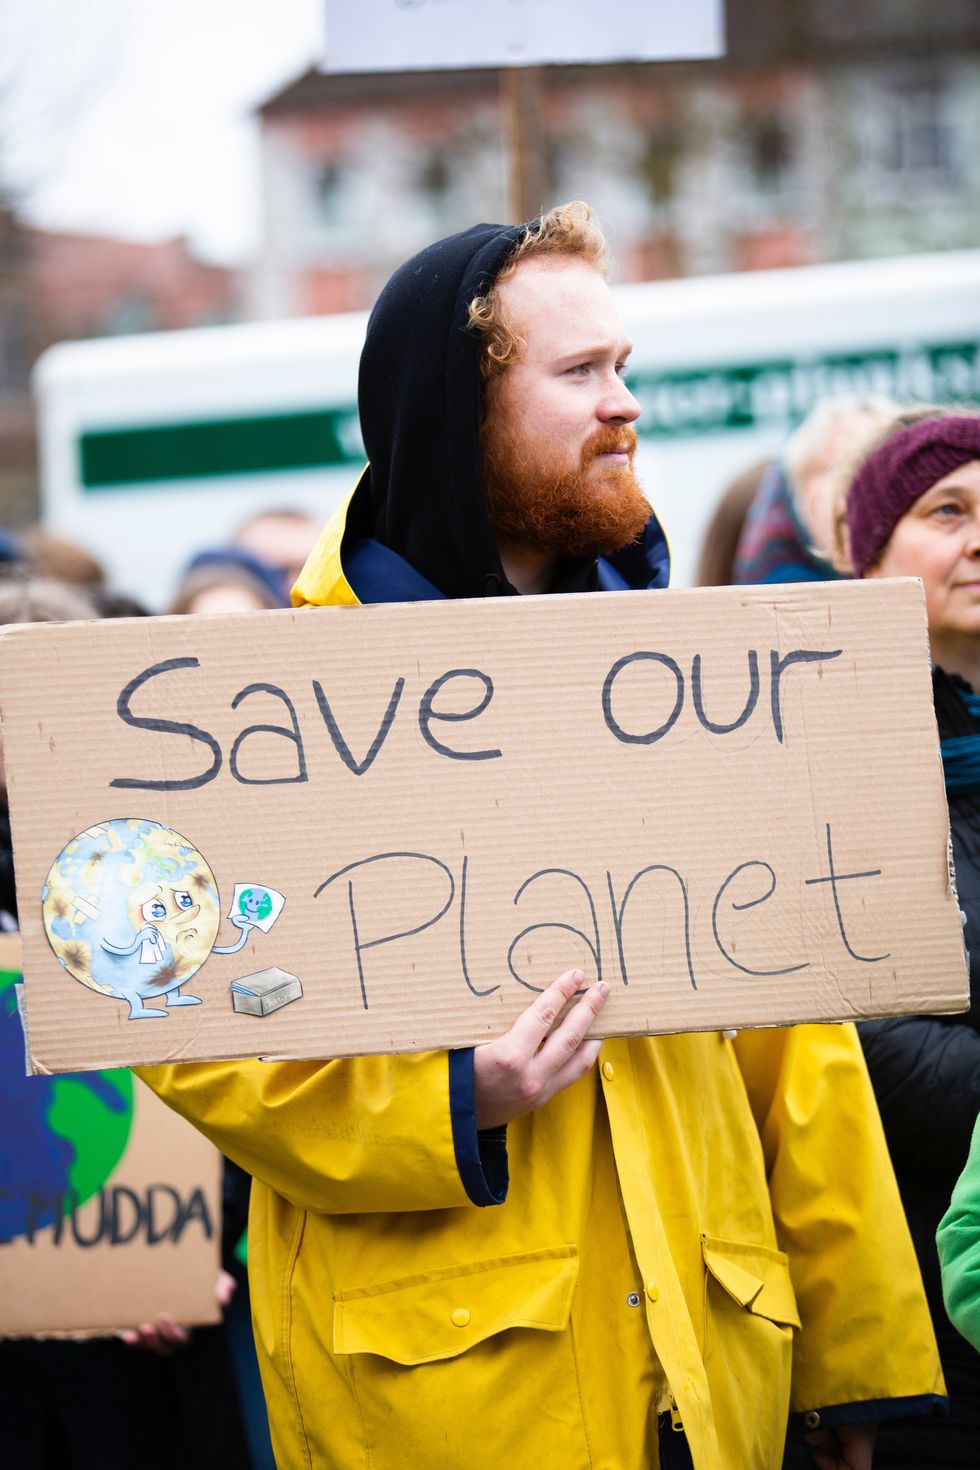 https://www.pexels.com/photo/person-holding-save-our-planet-sign-2027058/